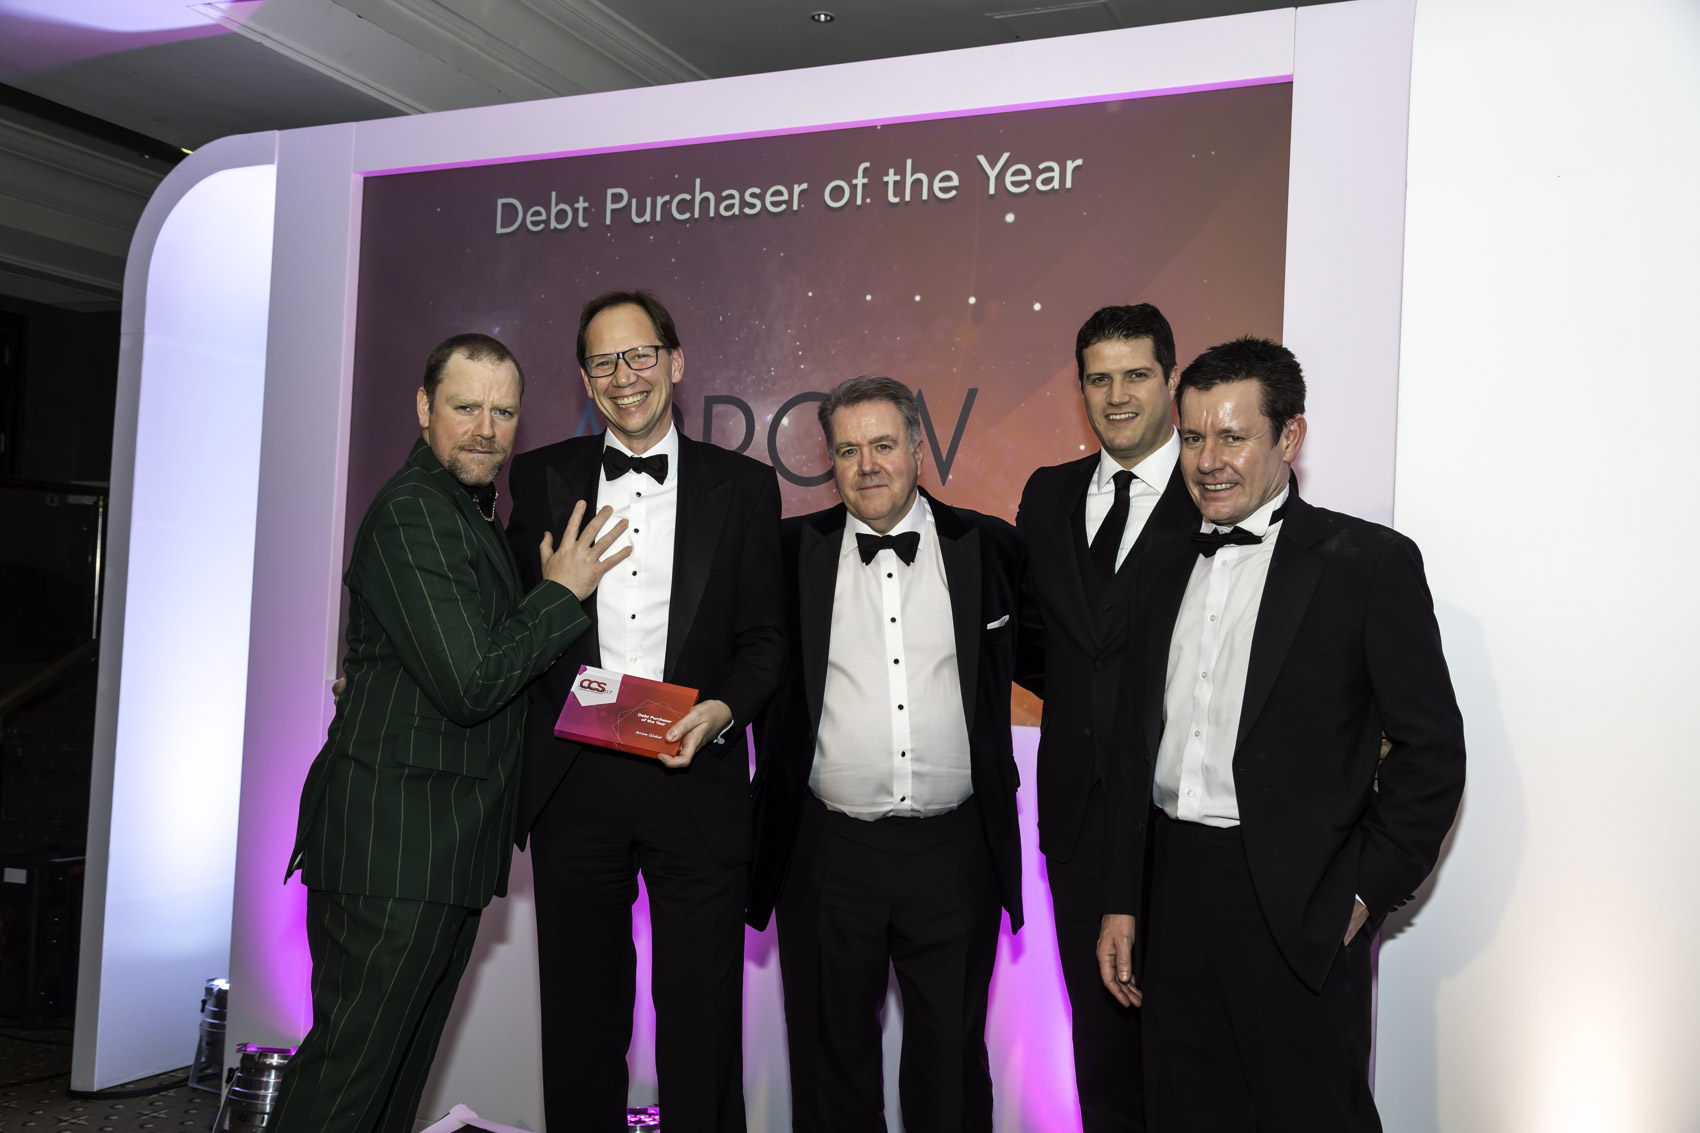 Winners CCS 2017 - 5 Debt Purchaser of the Year